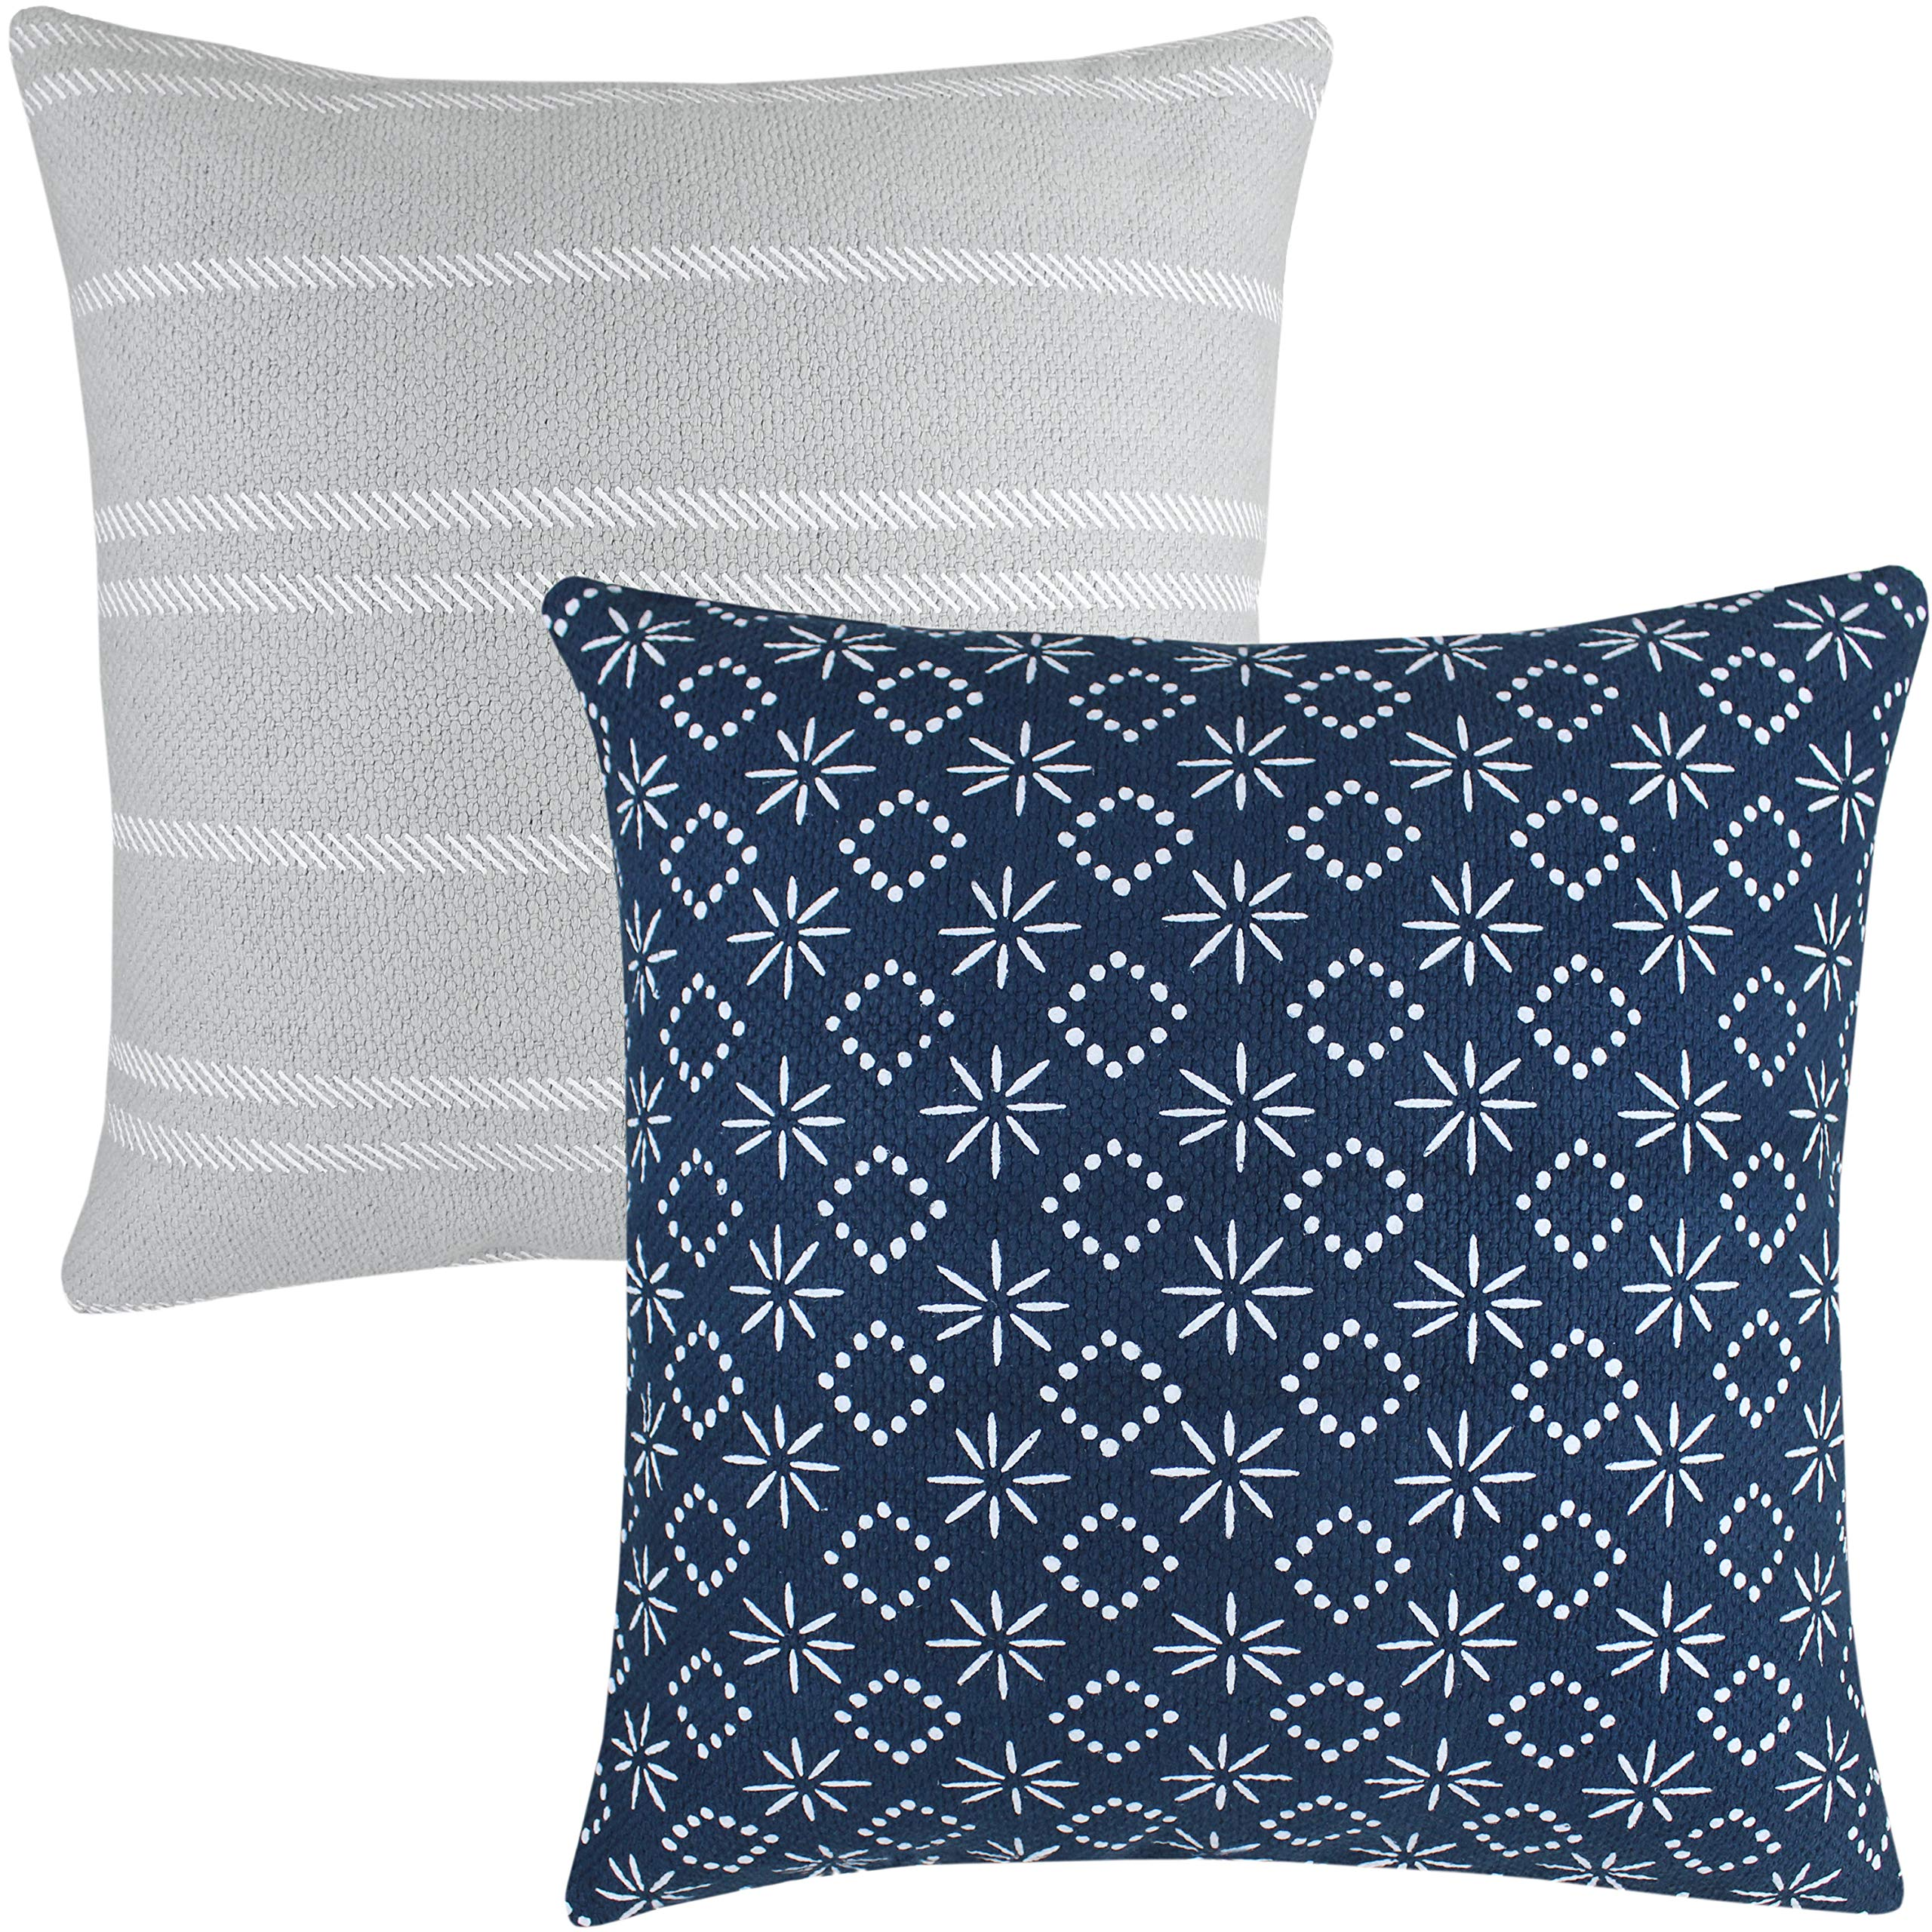 Woven Nook Decorative Throw Pillow Covers ONLY for Couch, Sofa, or Bed Set of 2 18 x 18 inch Modern Quality Design 100% Cotton Thick Woven Navy Grey Zuri by Woven Nook